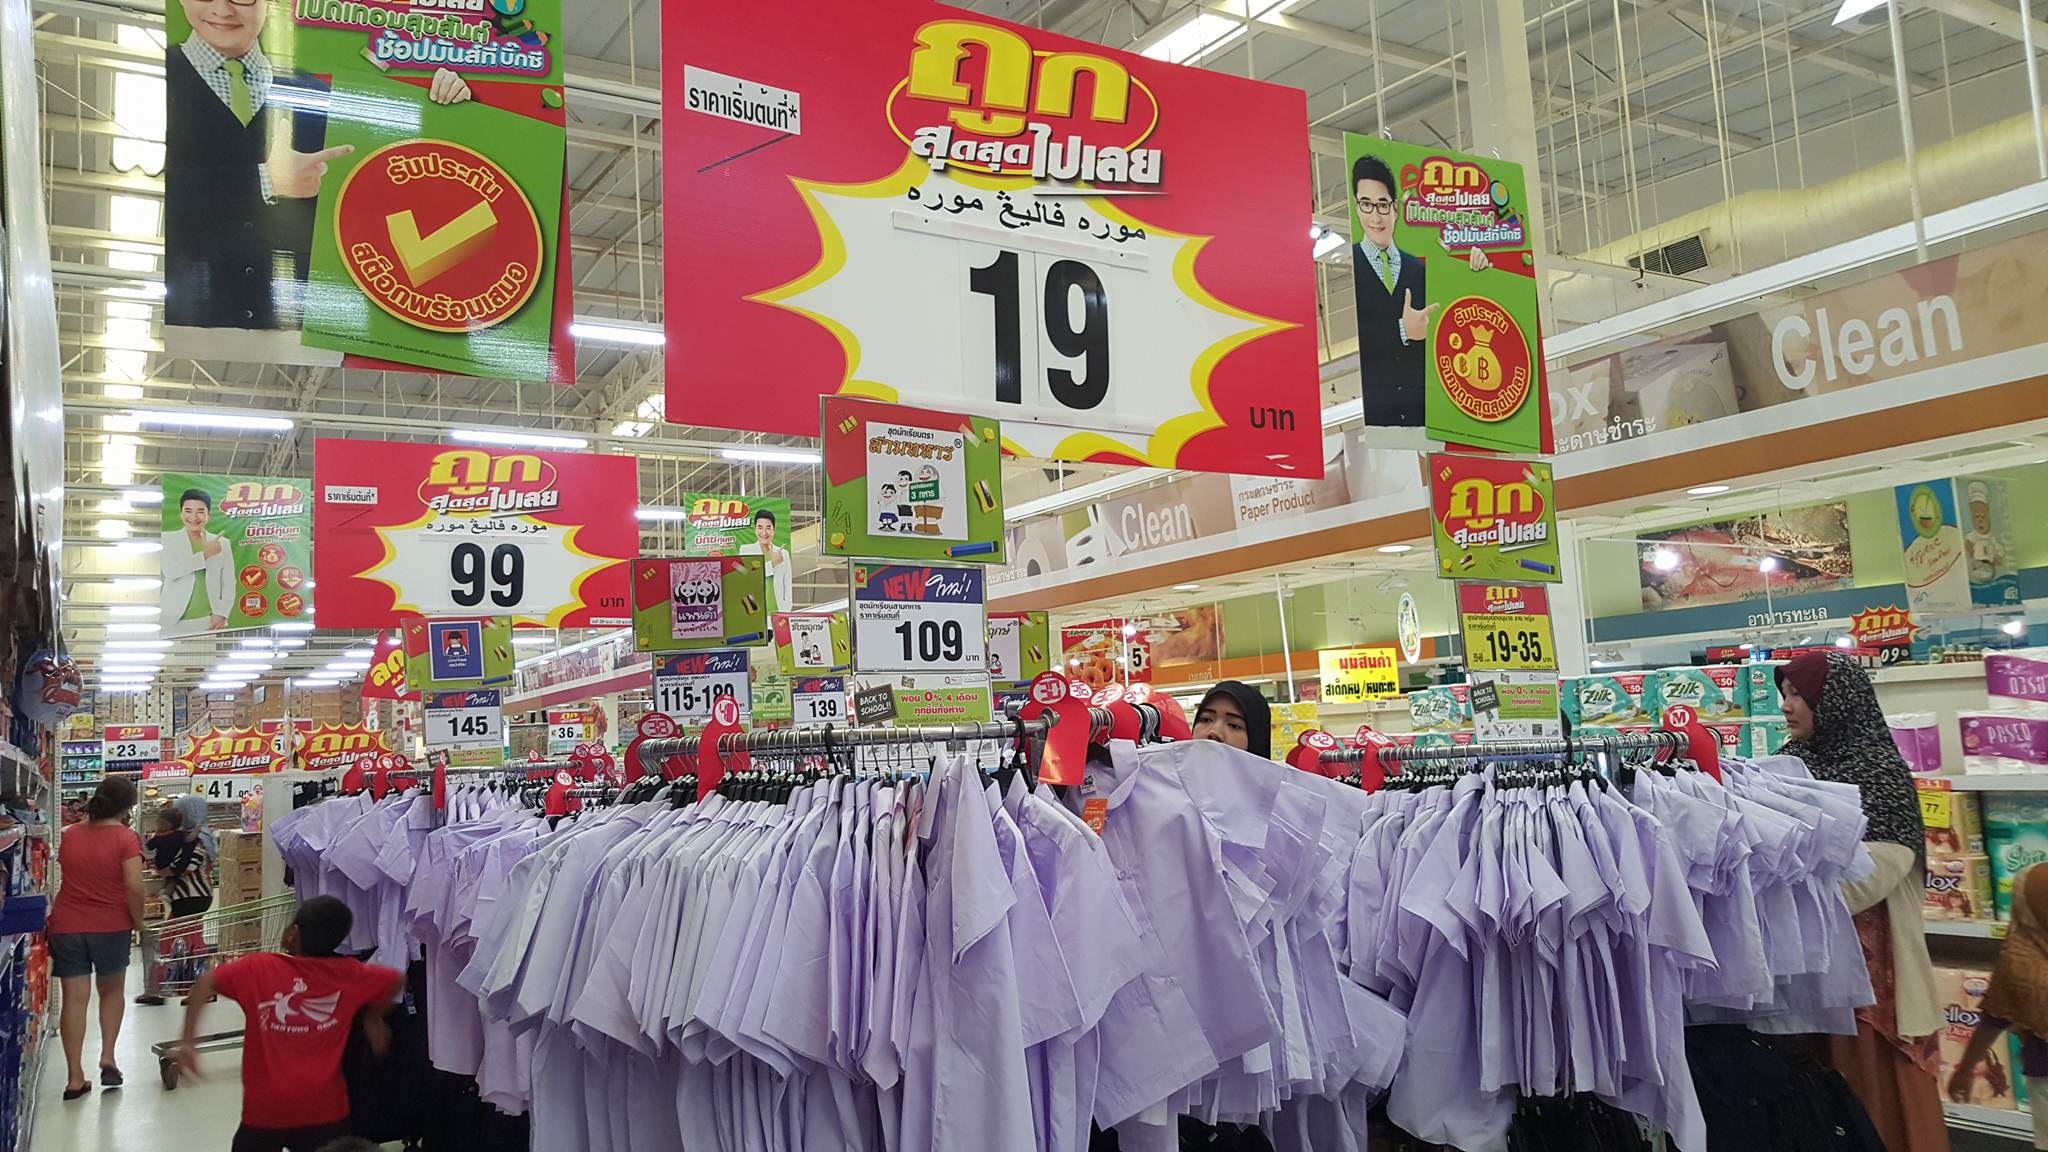 Thailand News - 28-04-17 3 NNT Affordable school supplies now available at various stores across BKK. 1JPG